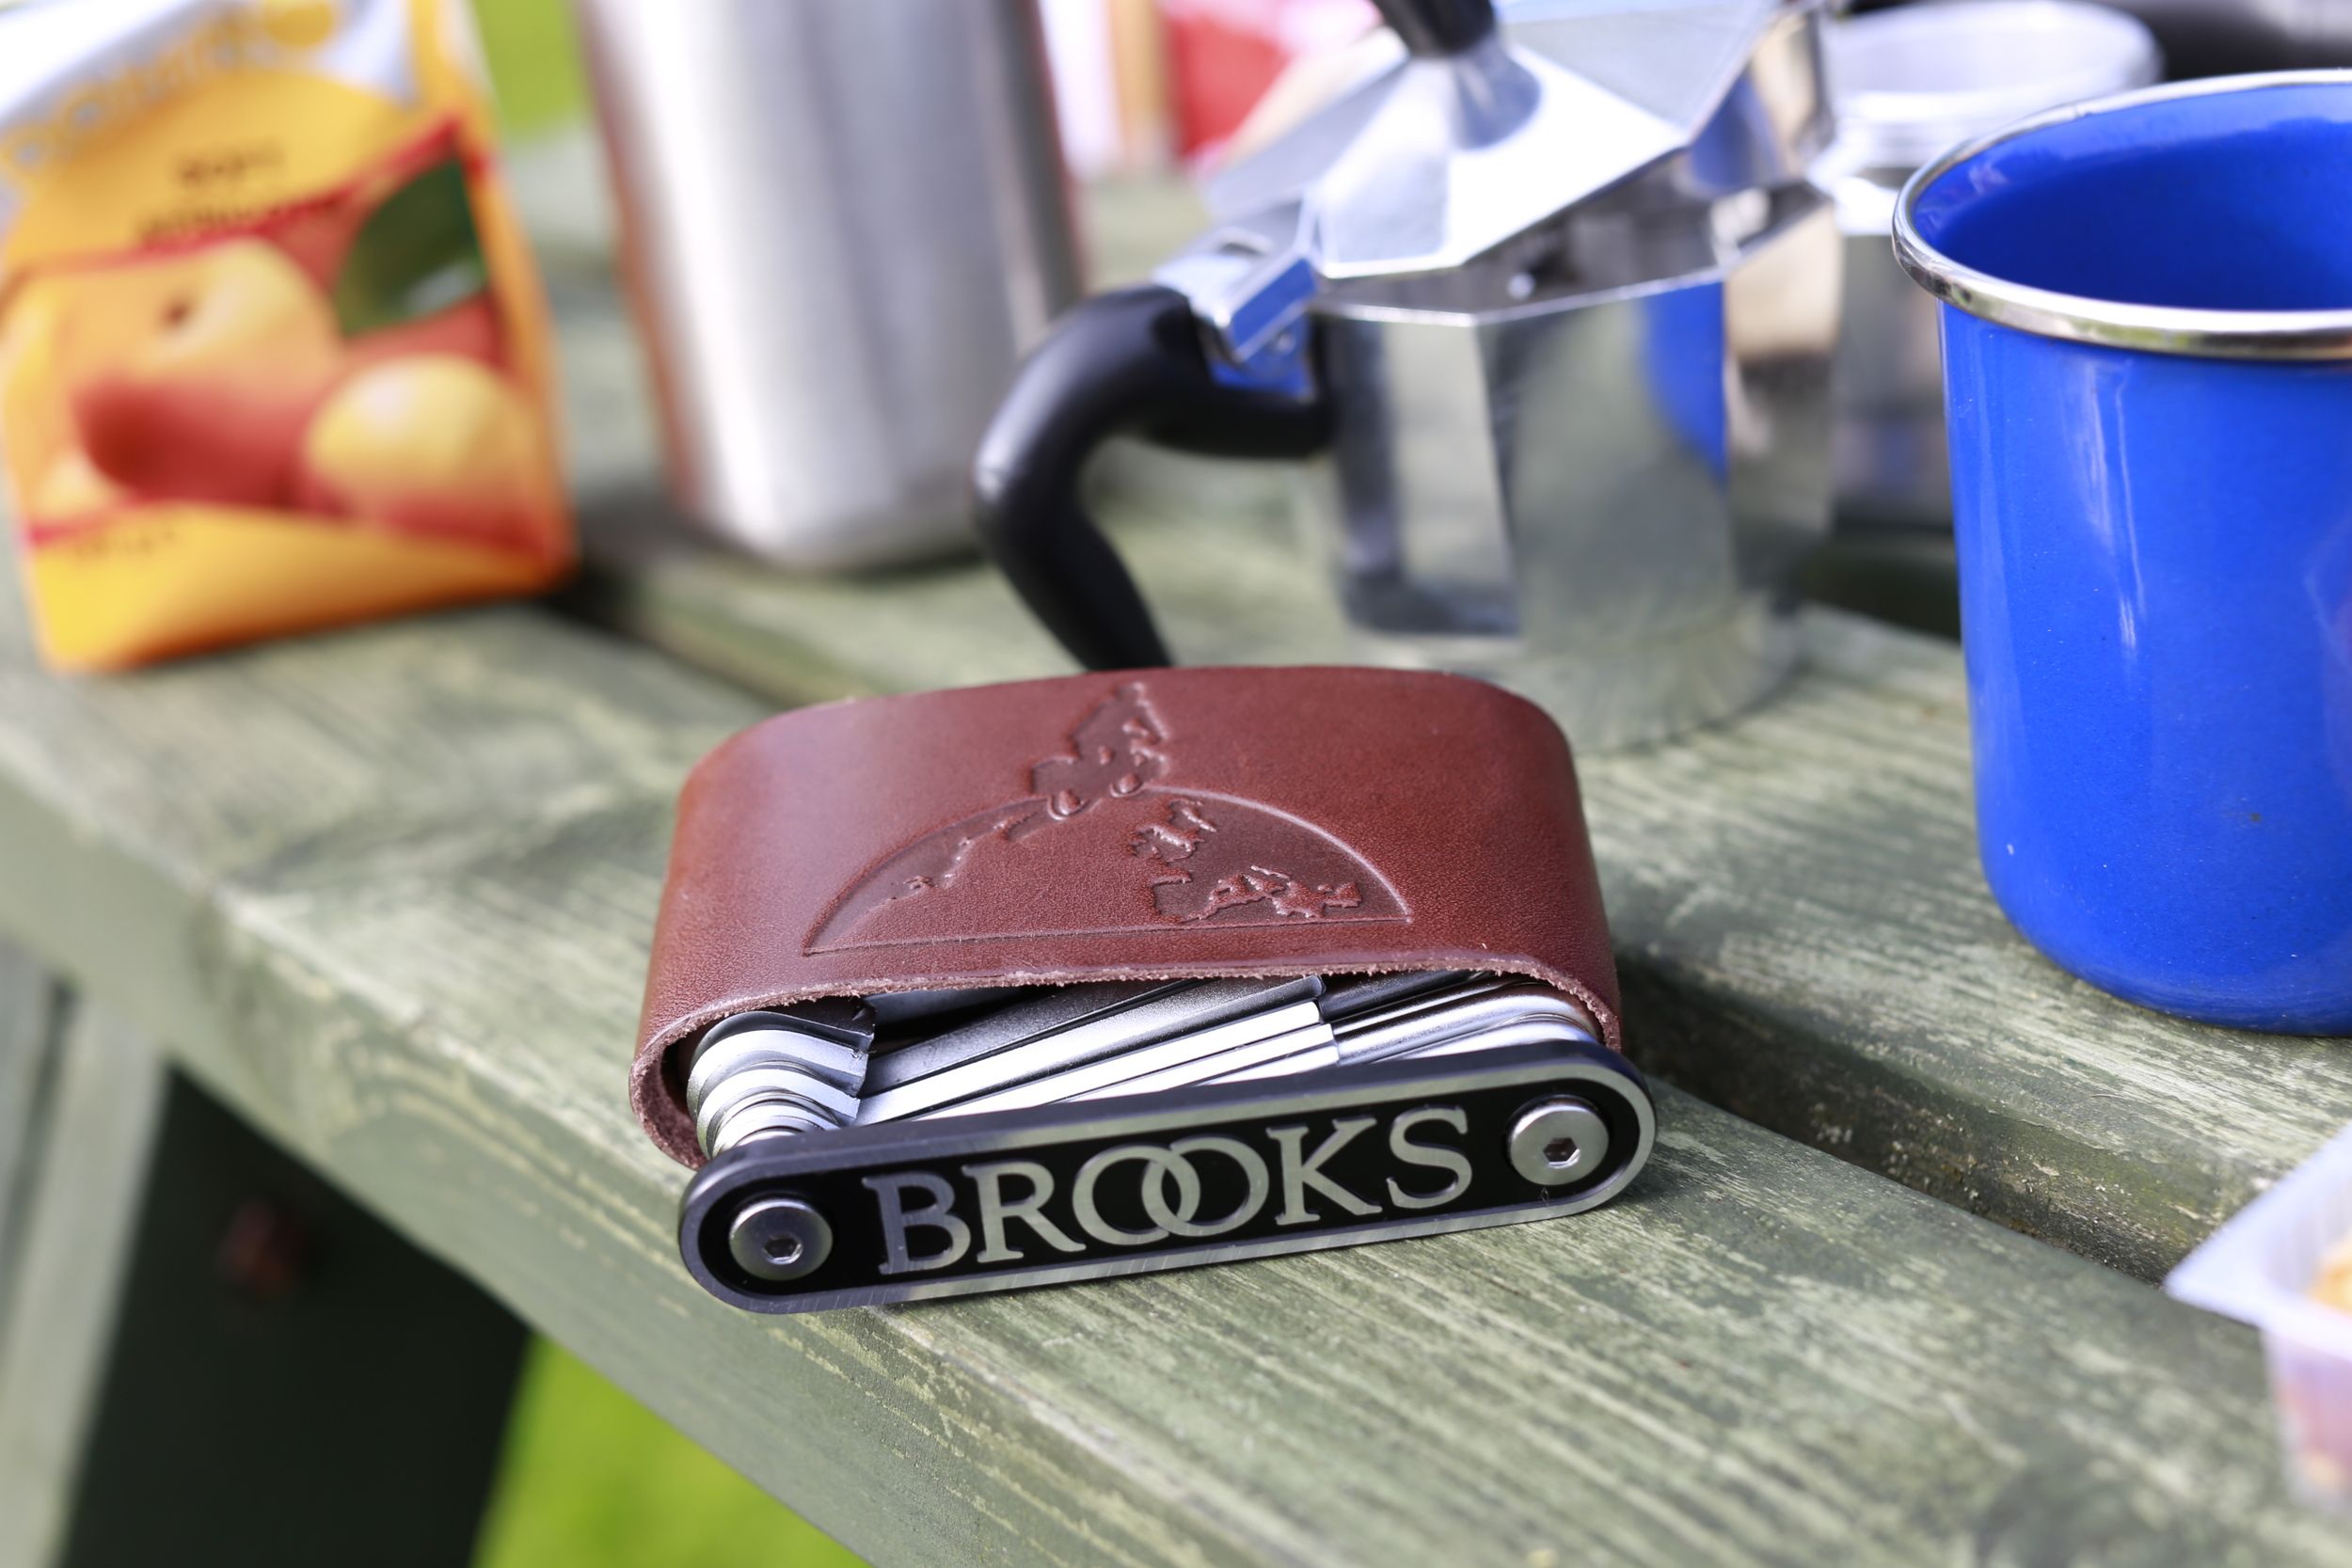 brooks, bike tool, multi tool, tool, bike, cycle gear, review, reviews, gear review, bike review